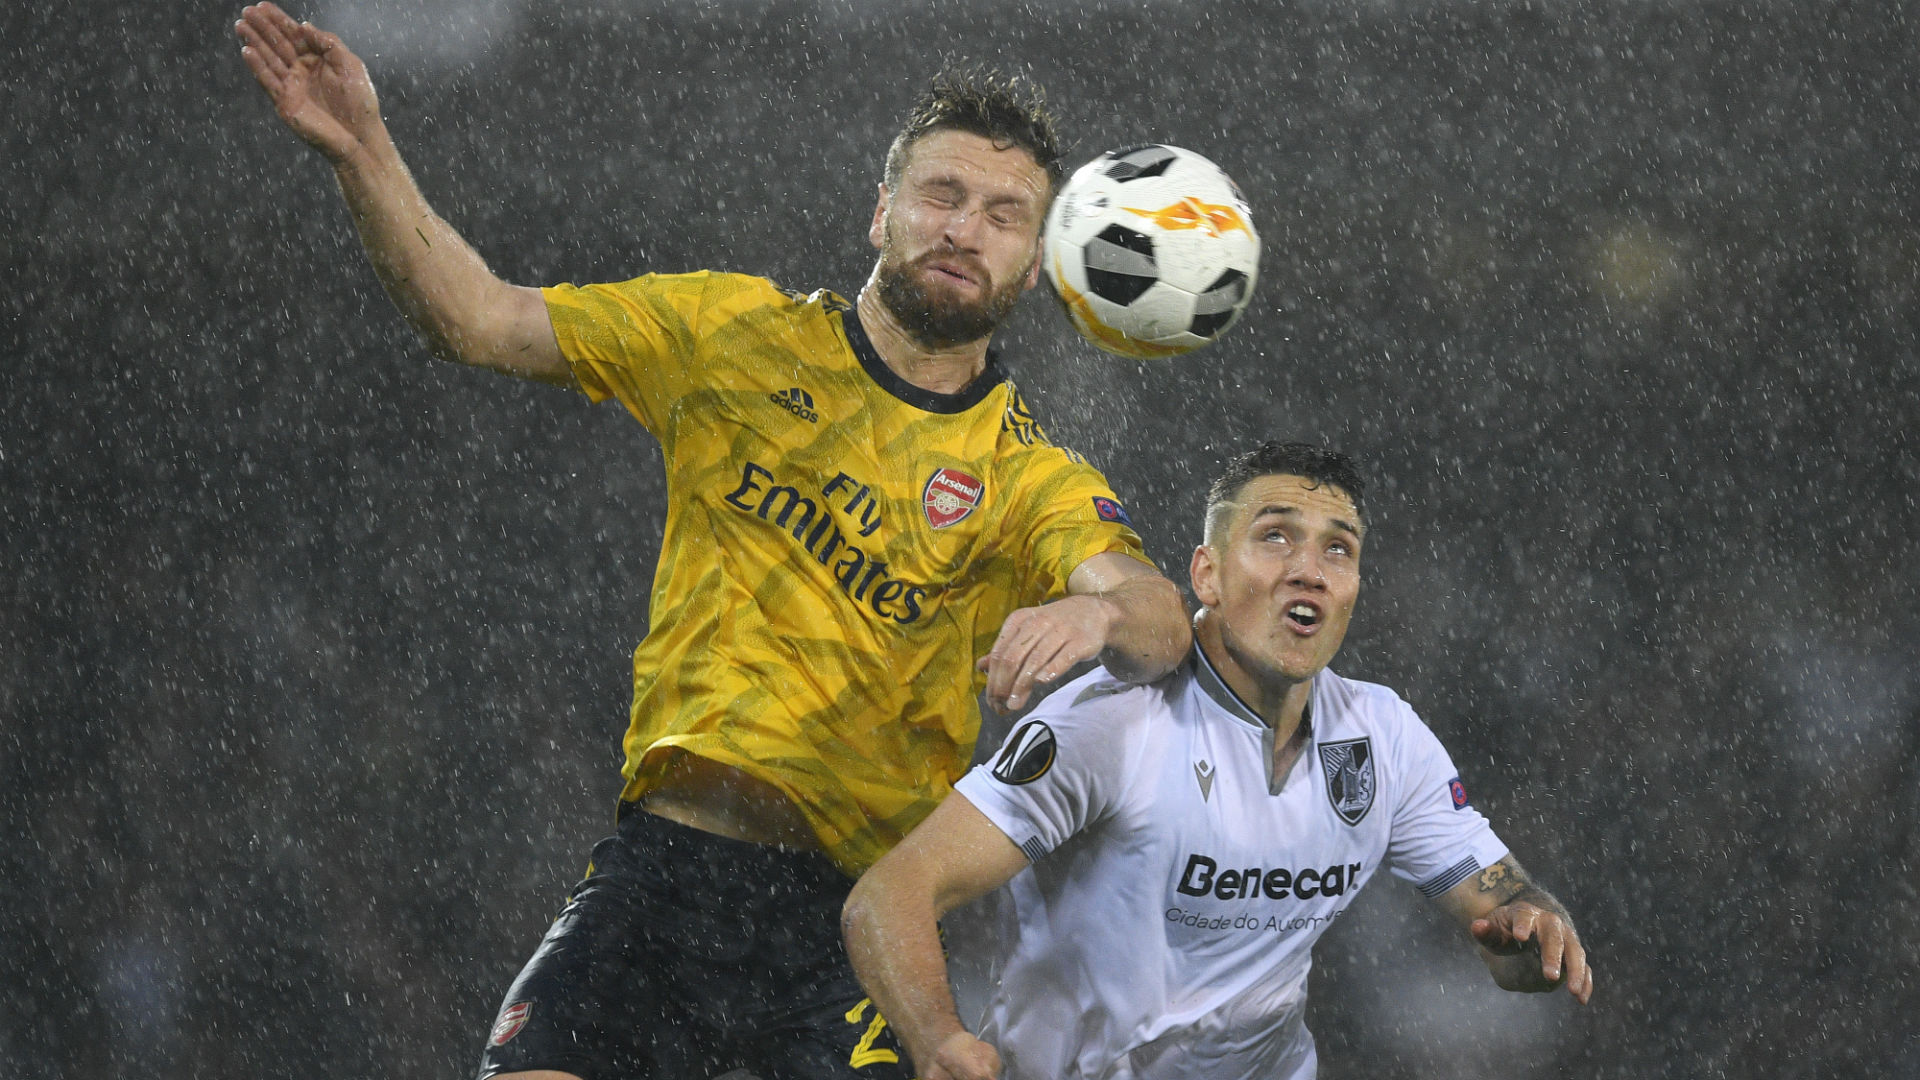 Guimaraes vs. Arsenal - Football Match Report